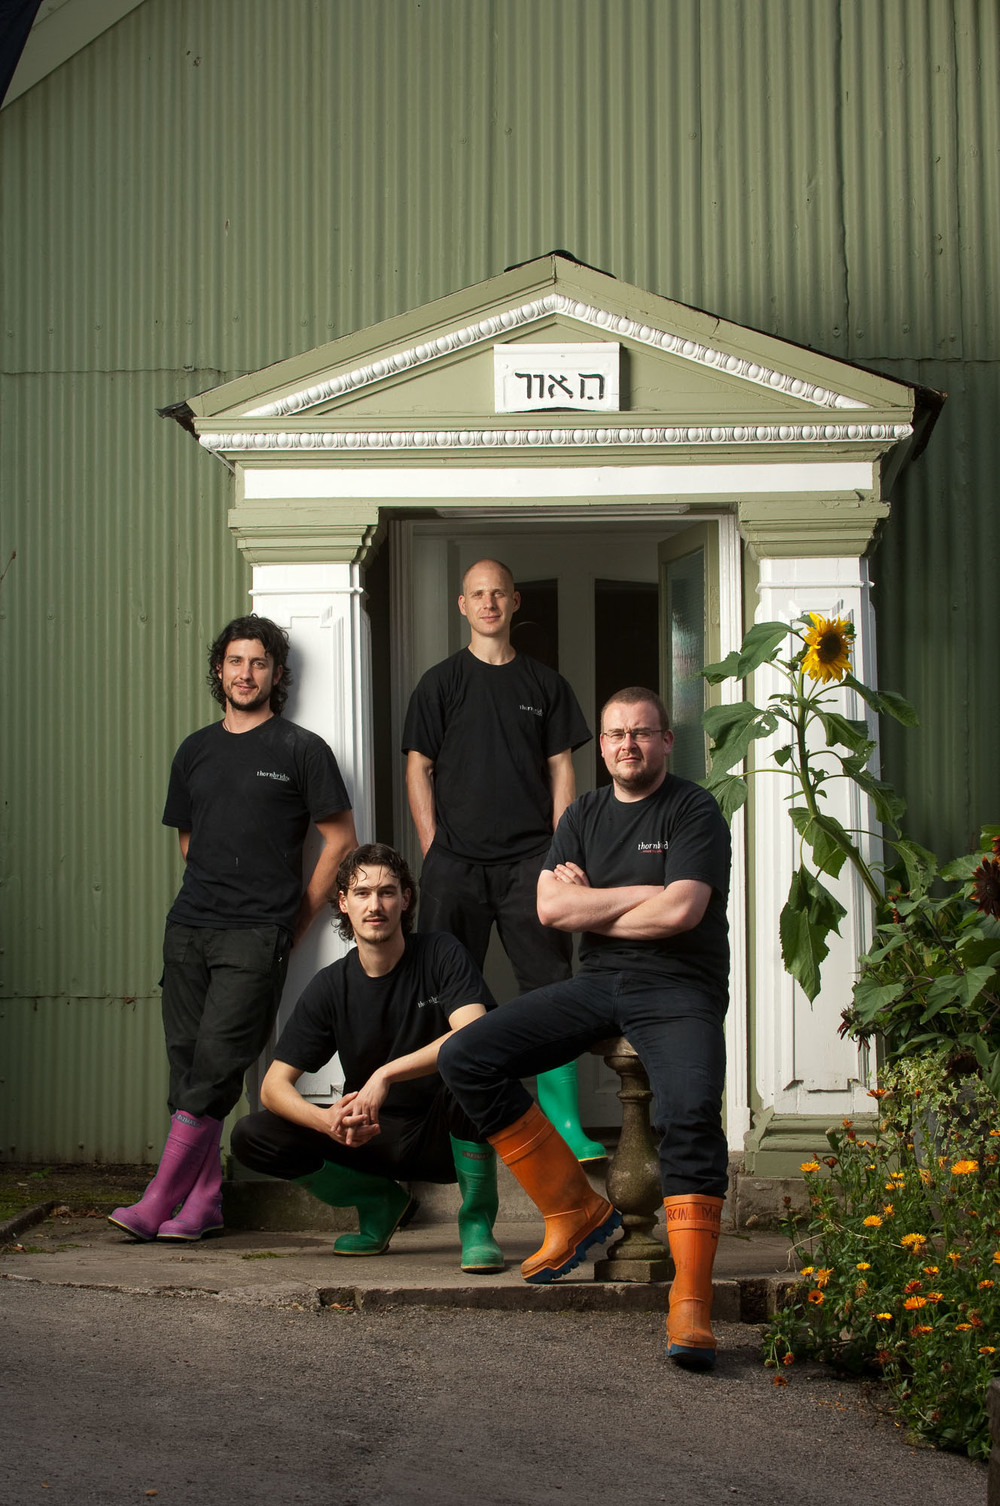 Brew Team - Thornbridge Brewery